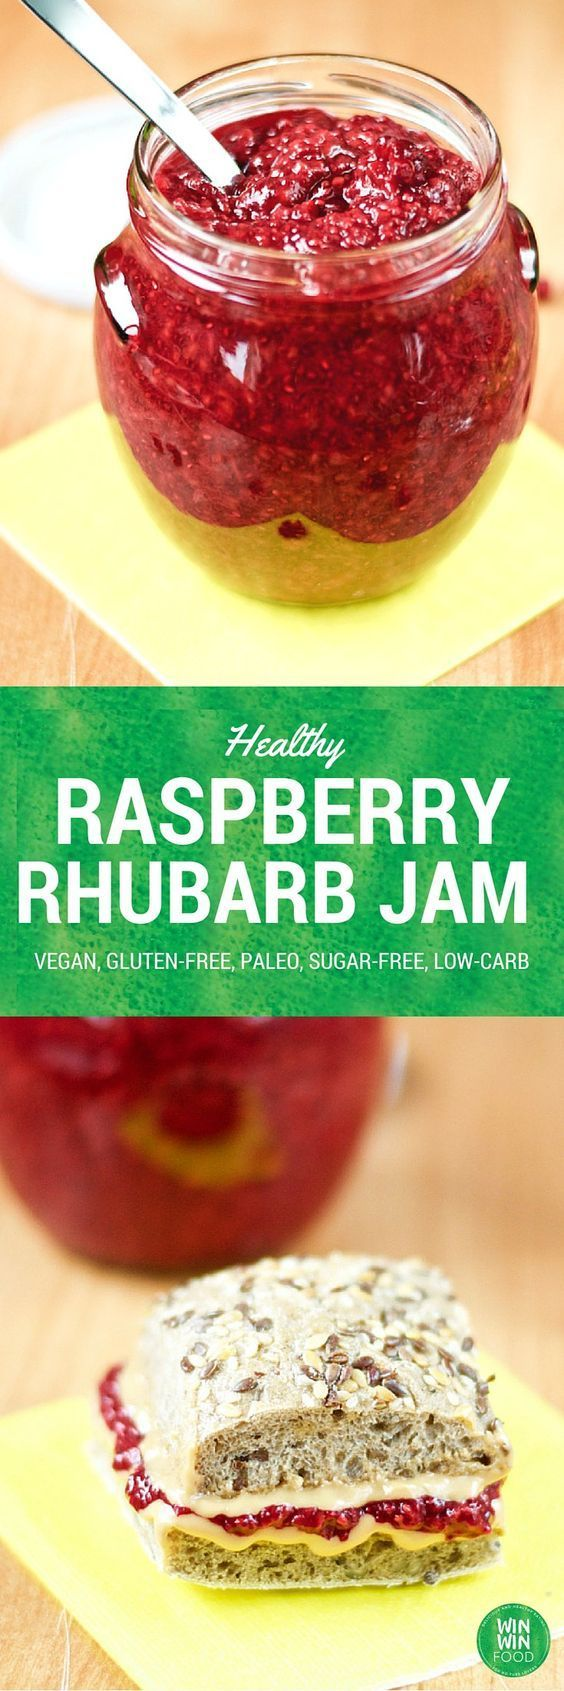 Healthy Raspberry Rhubarb Jam | WIN-WINFOOD.com #healthy #vegan #sugarfree…